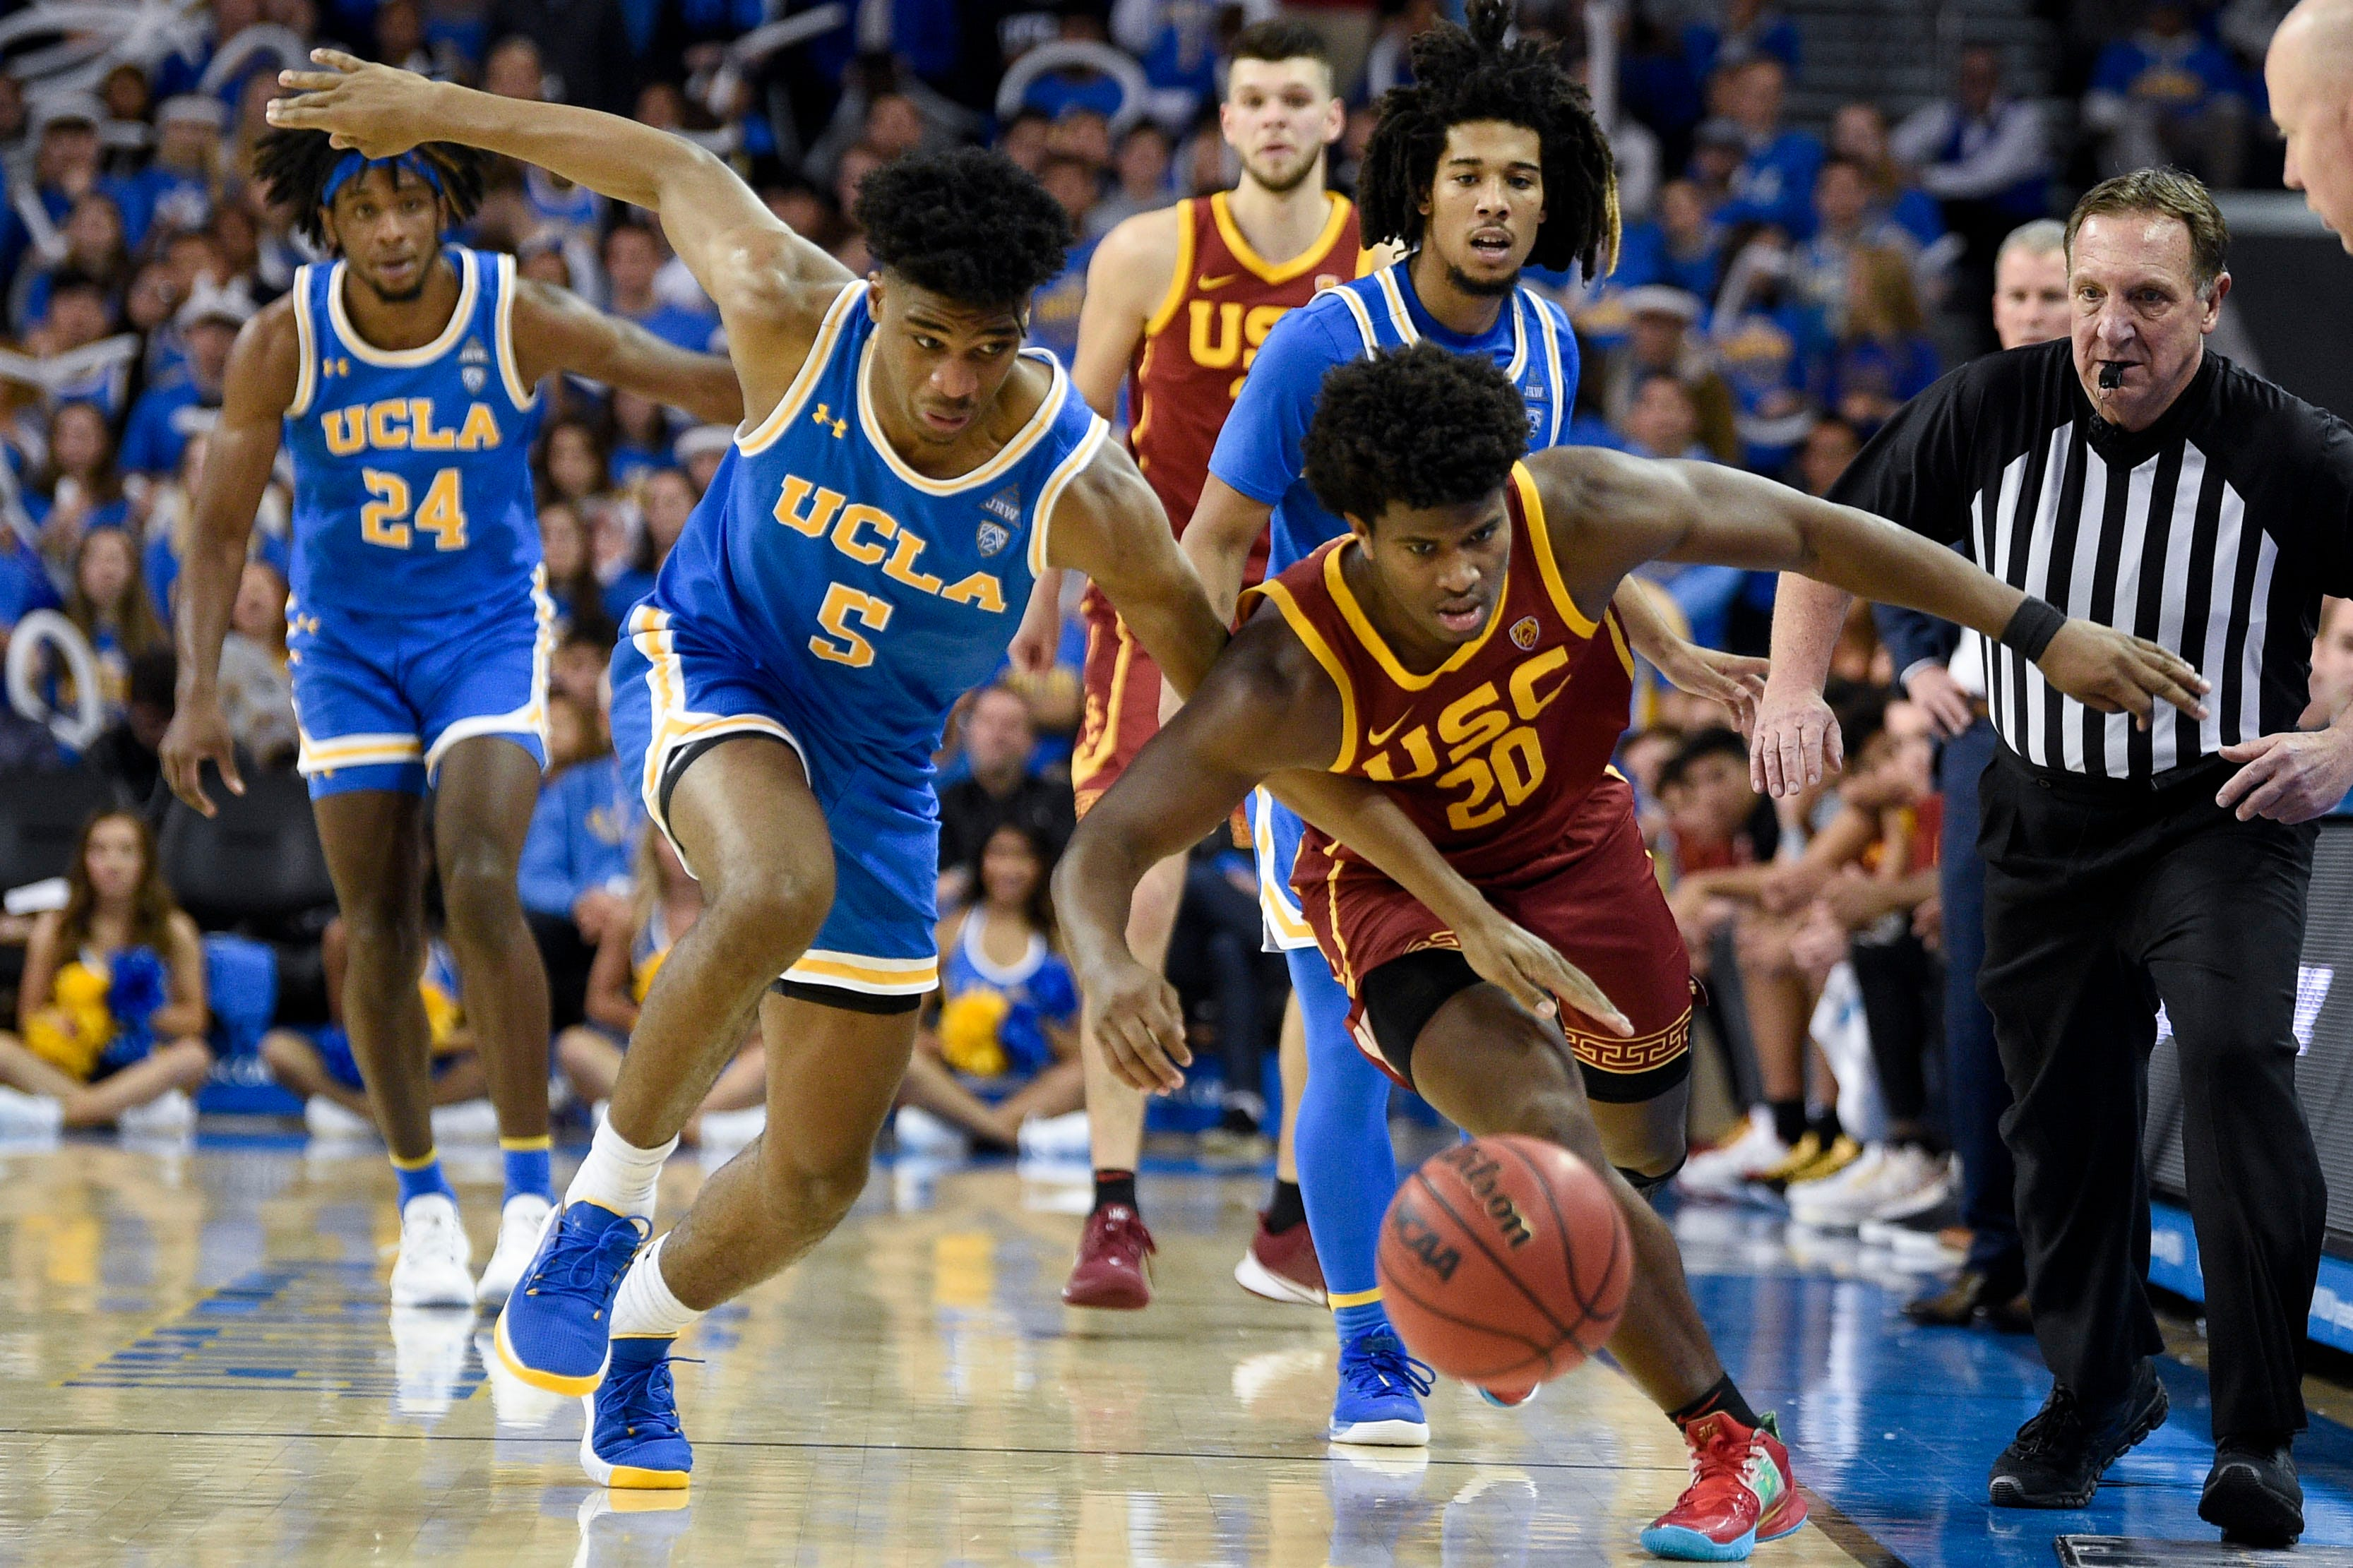 NCAA tournament bracketology: Pac-12 to win March Madness bubble